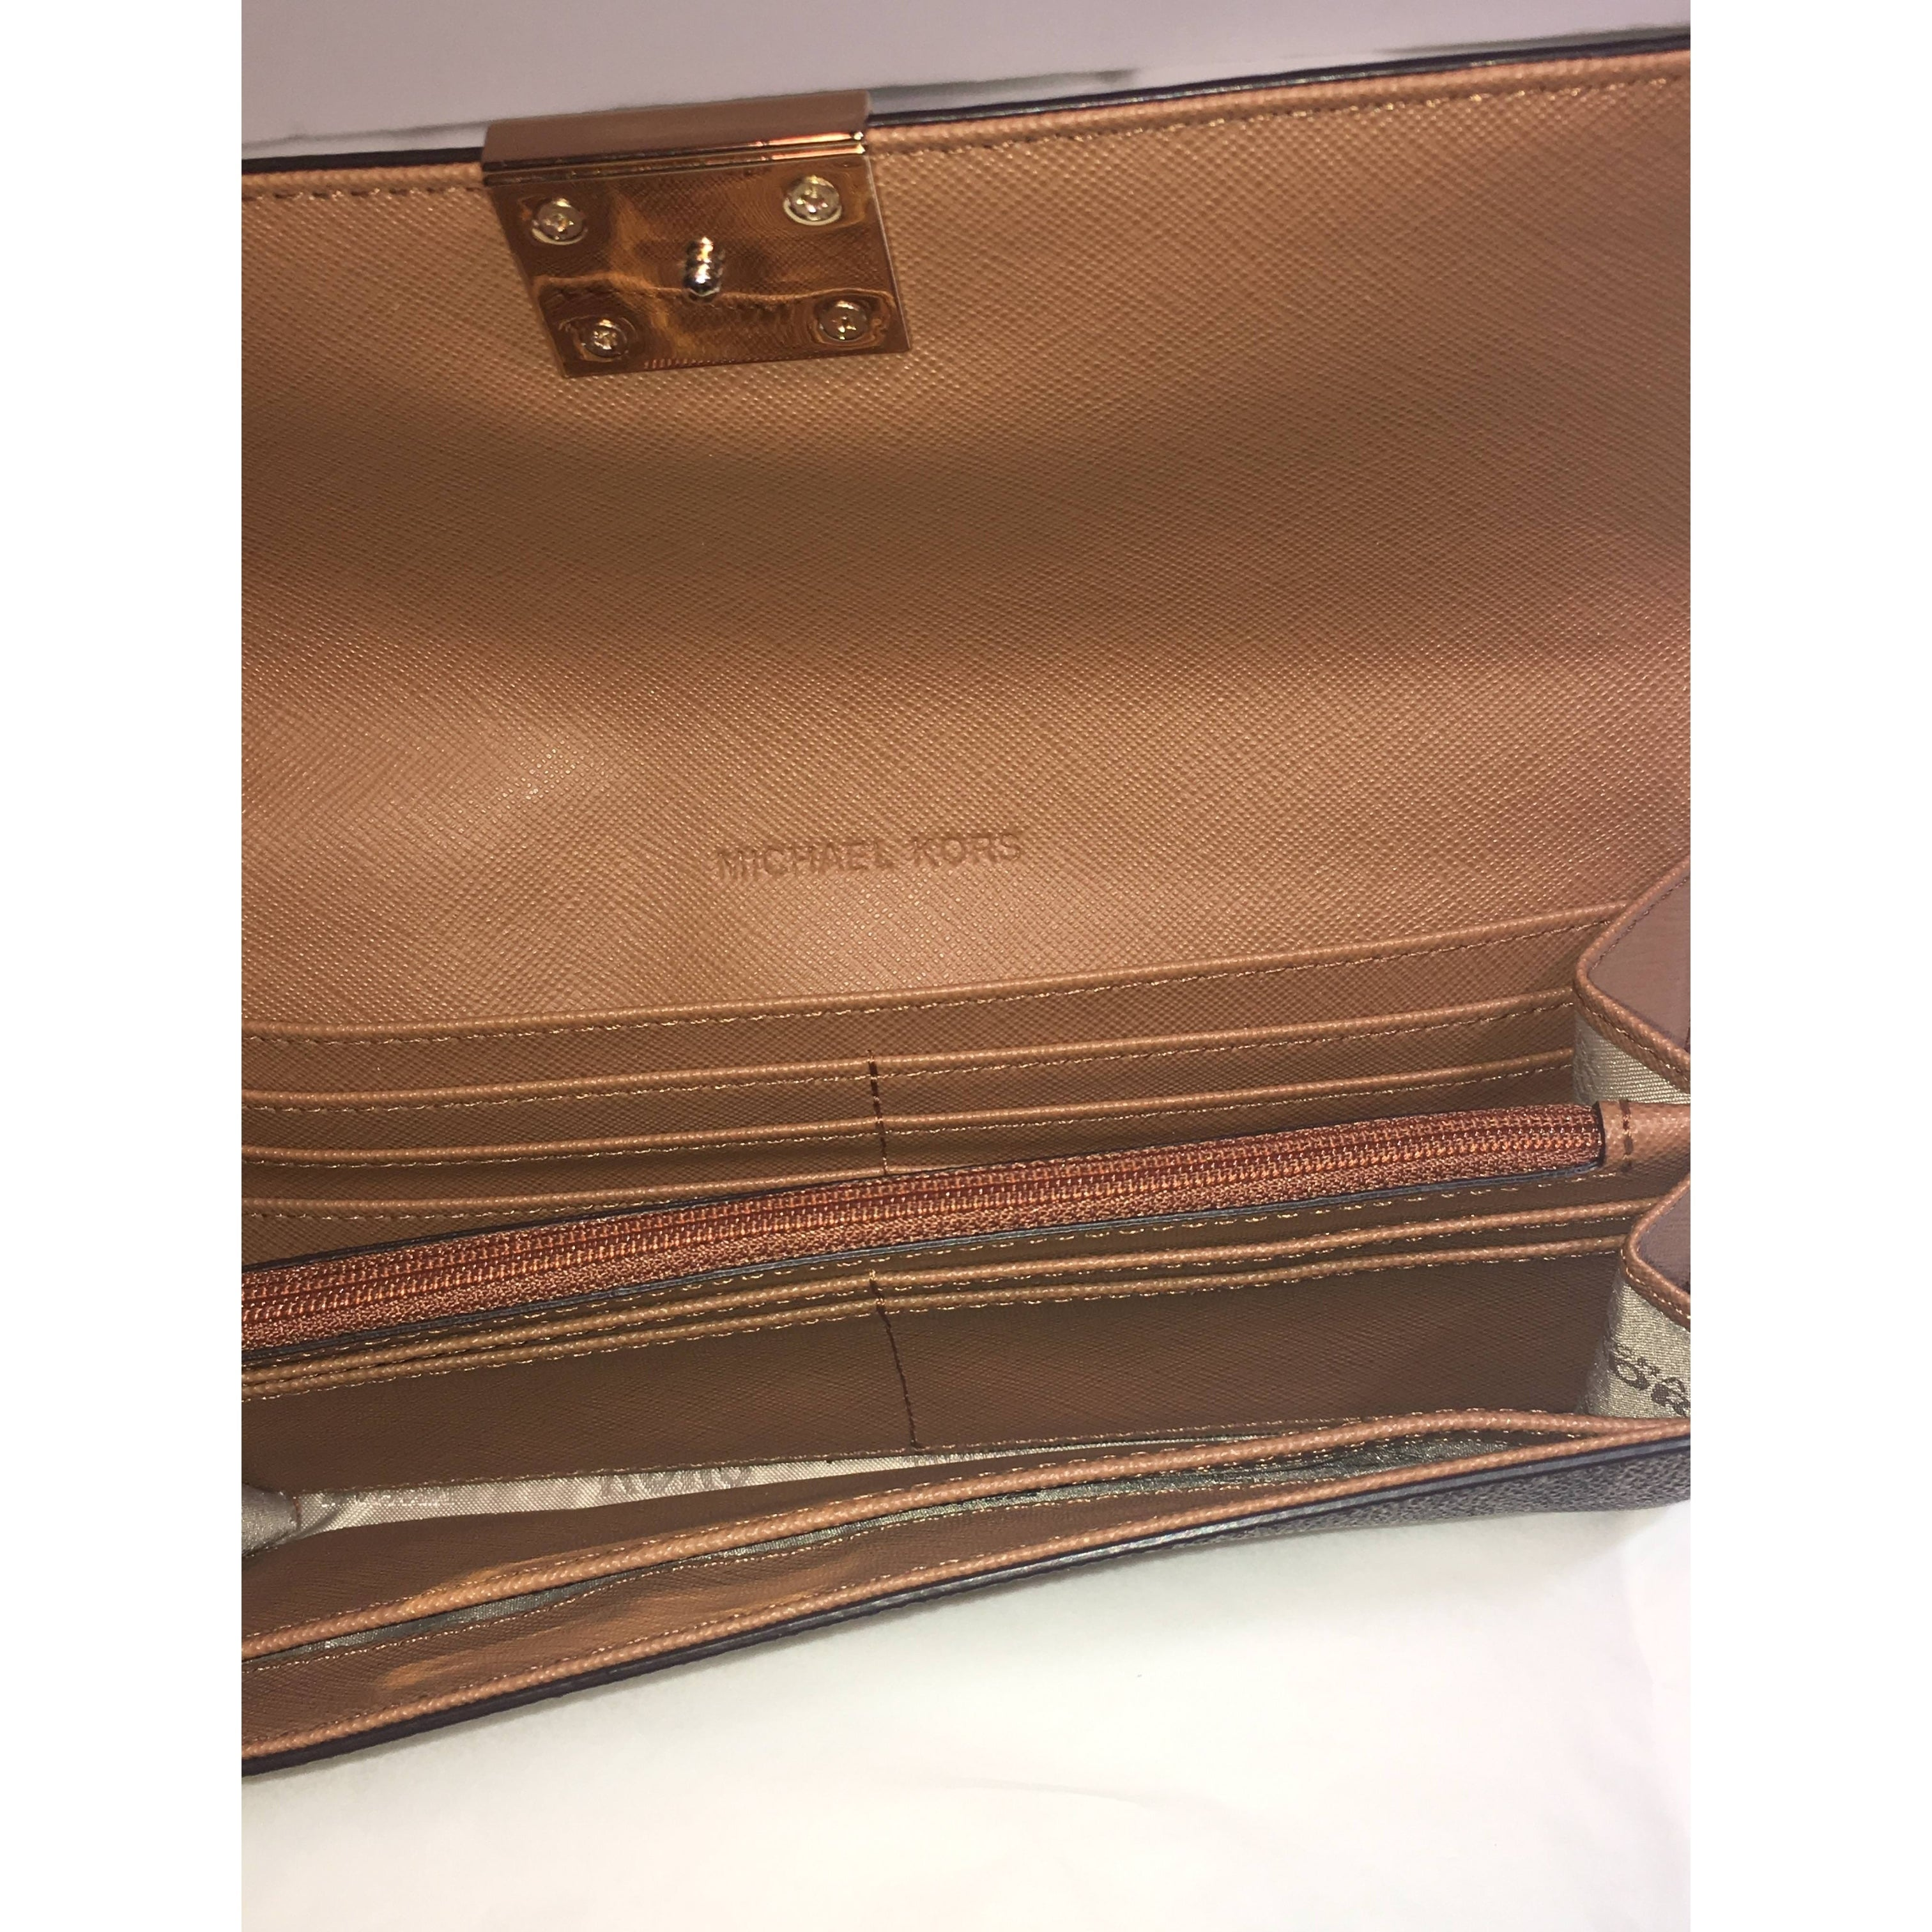 ddd0a0c366c52c Shop Michael Kors Mindy Carryall PVC Flap Wallet Clutch - Free Shipping  Today - Overstock - 22465309